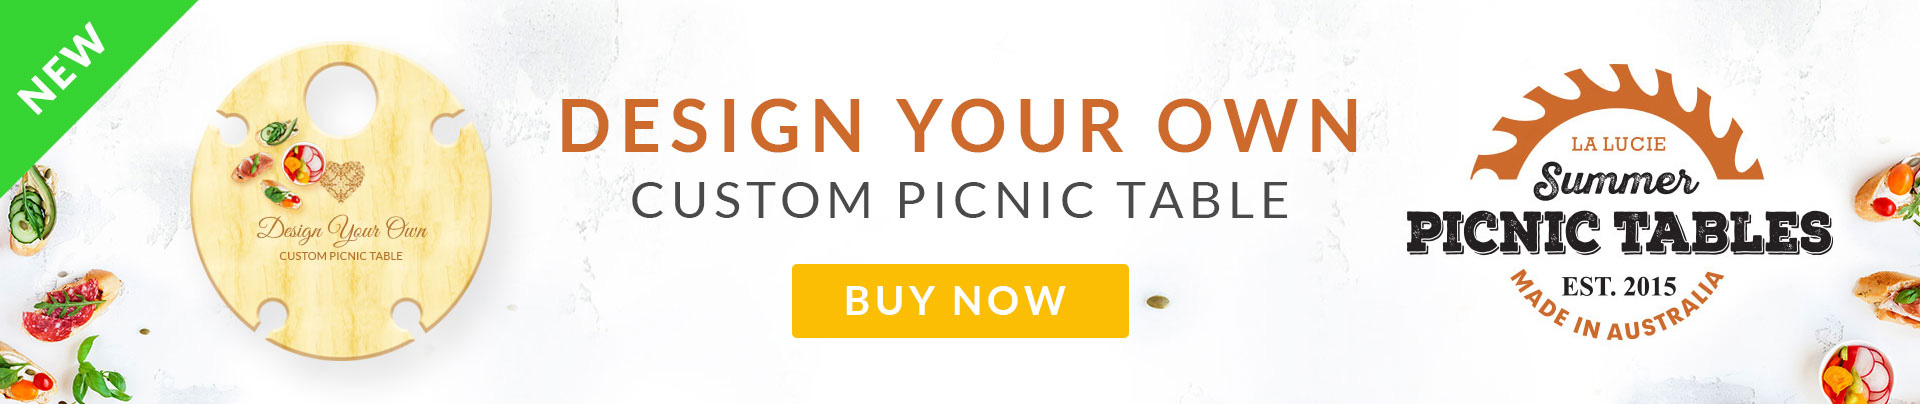 Design Your Own Picnic Table